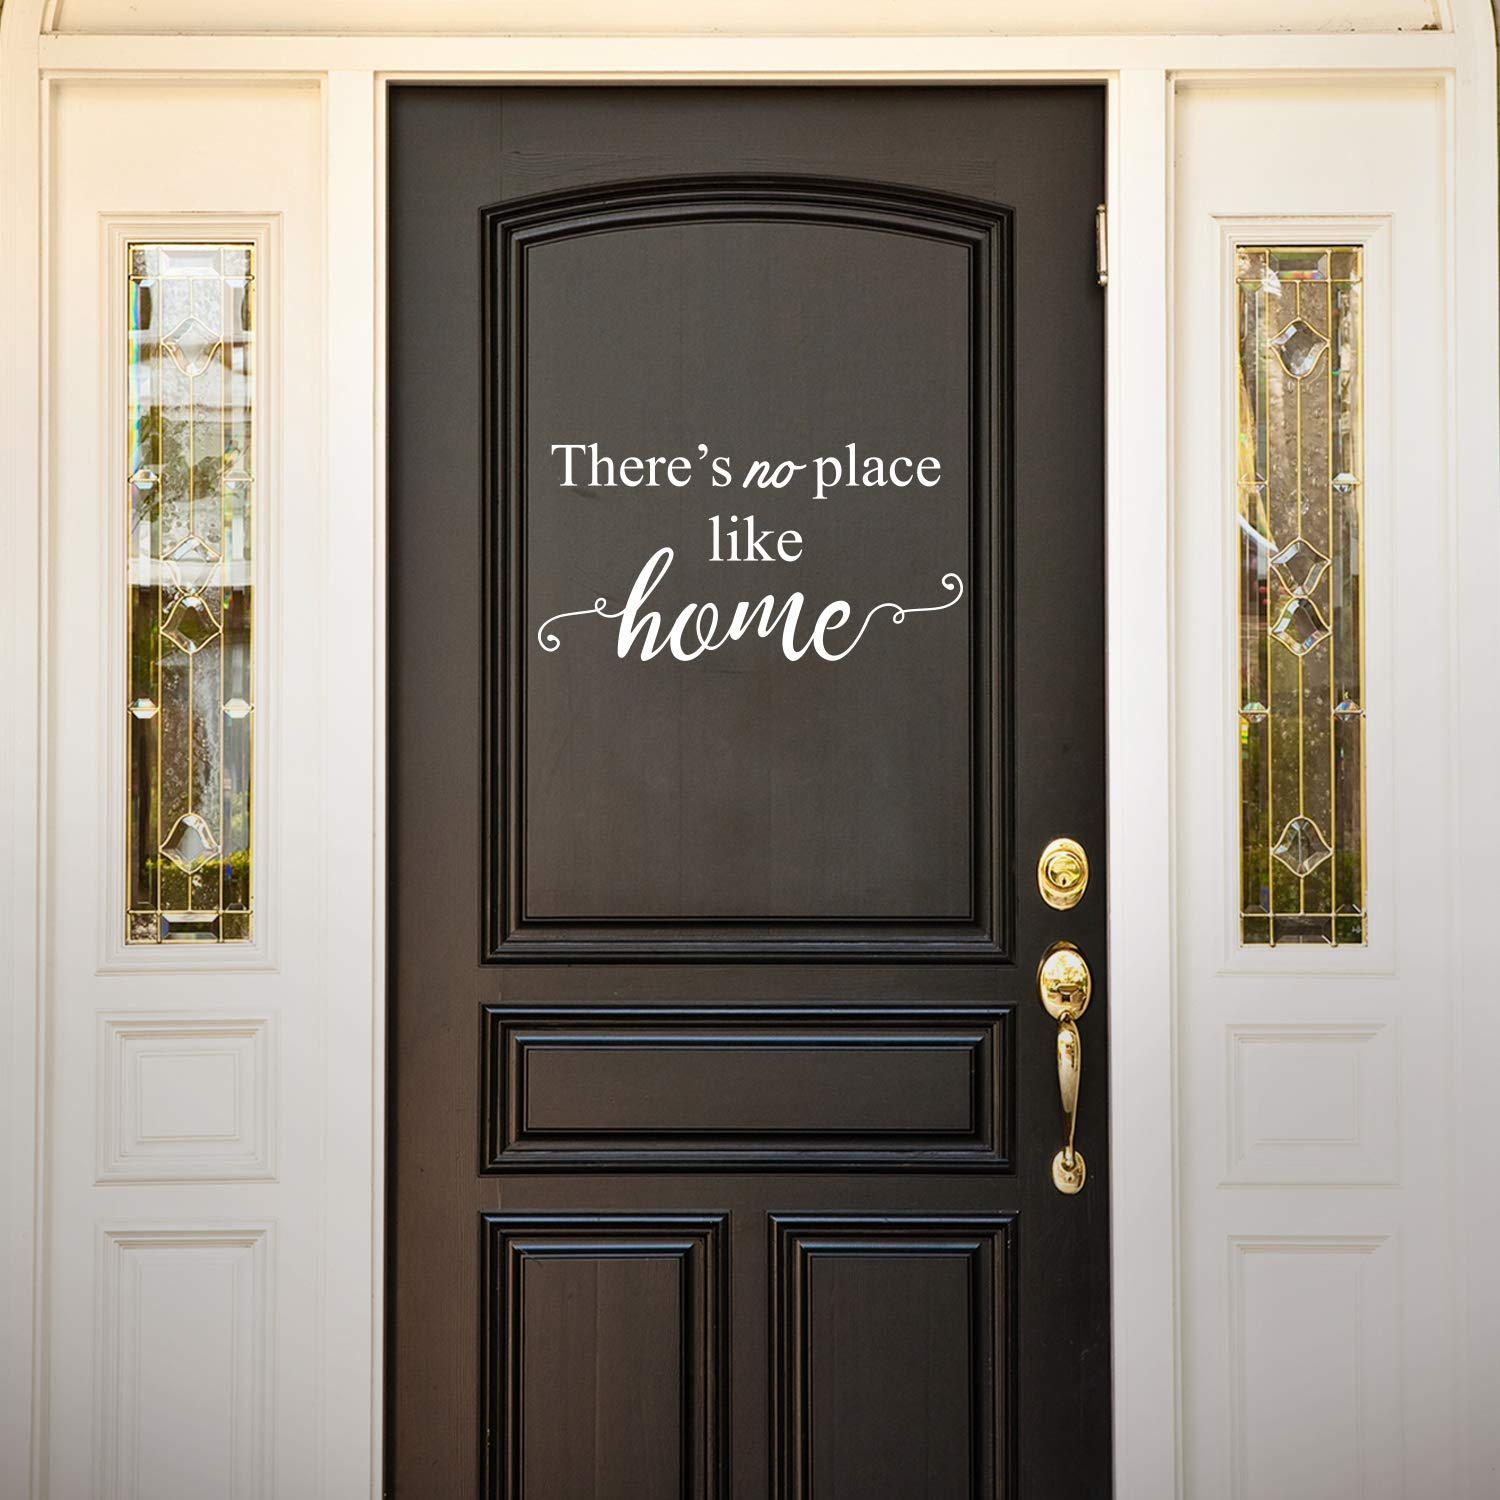 "Vinyl Wall Art Decal - There's No Place Like Home - 11.5"" x 22.5"" - Modern Charming Welcome Door Living Room Apartment Trendy Indoor Outdoor Friendly Household Sign Decor (11.5"" x 22.5"", White)"